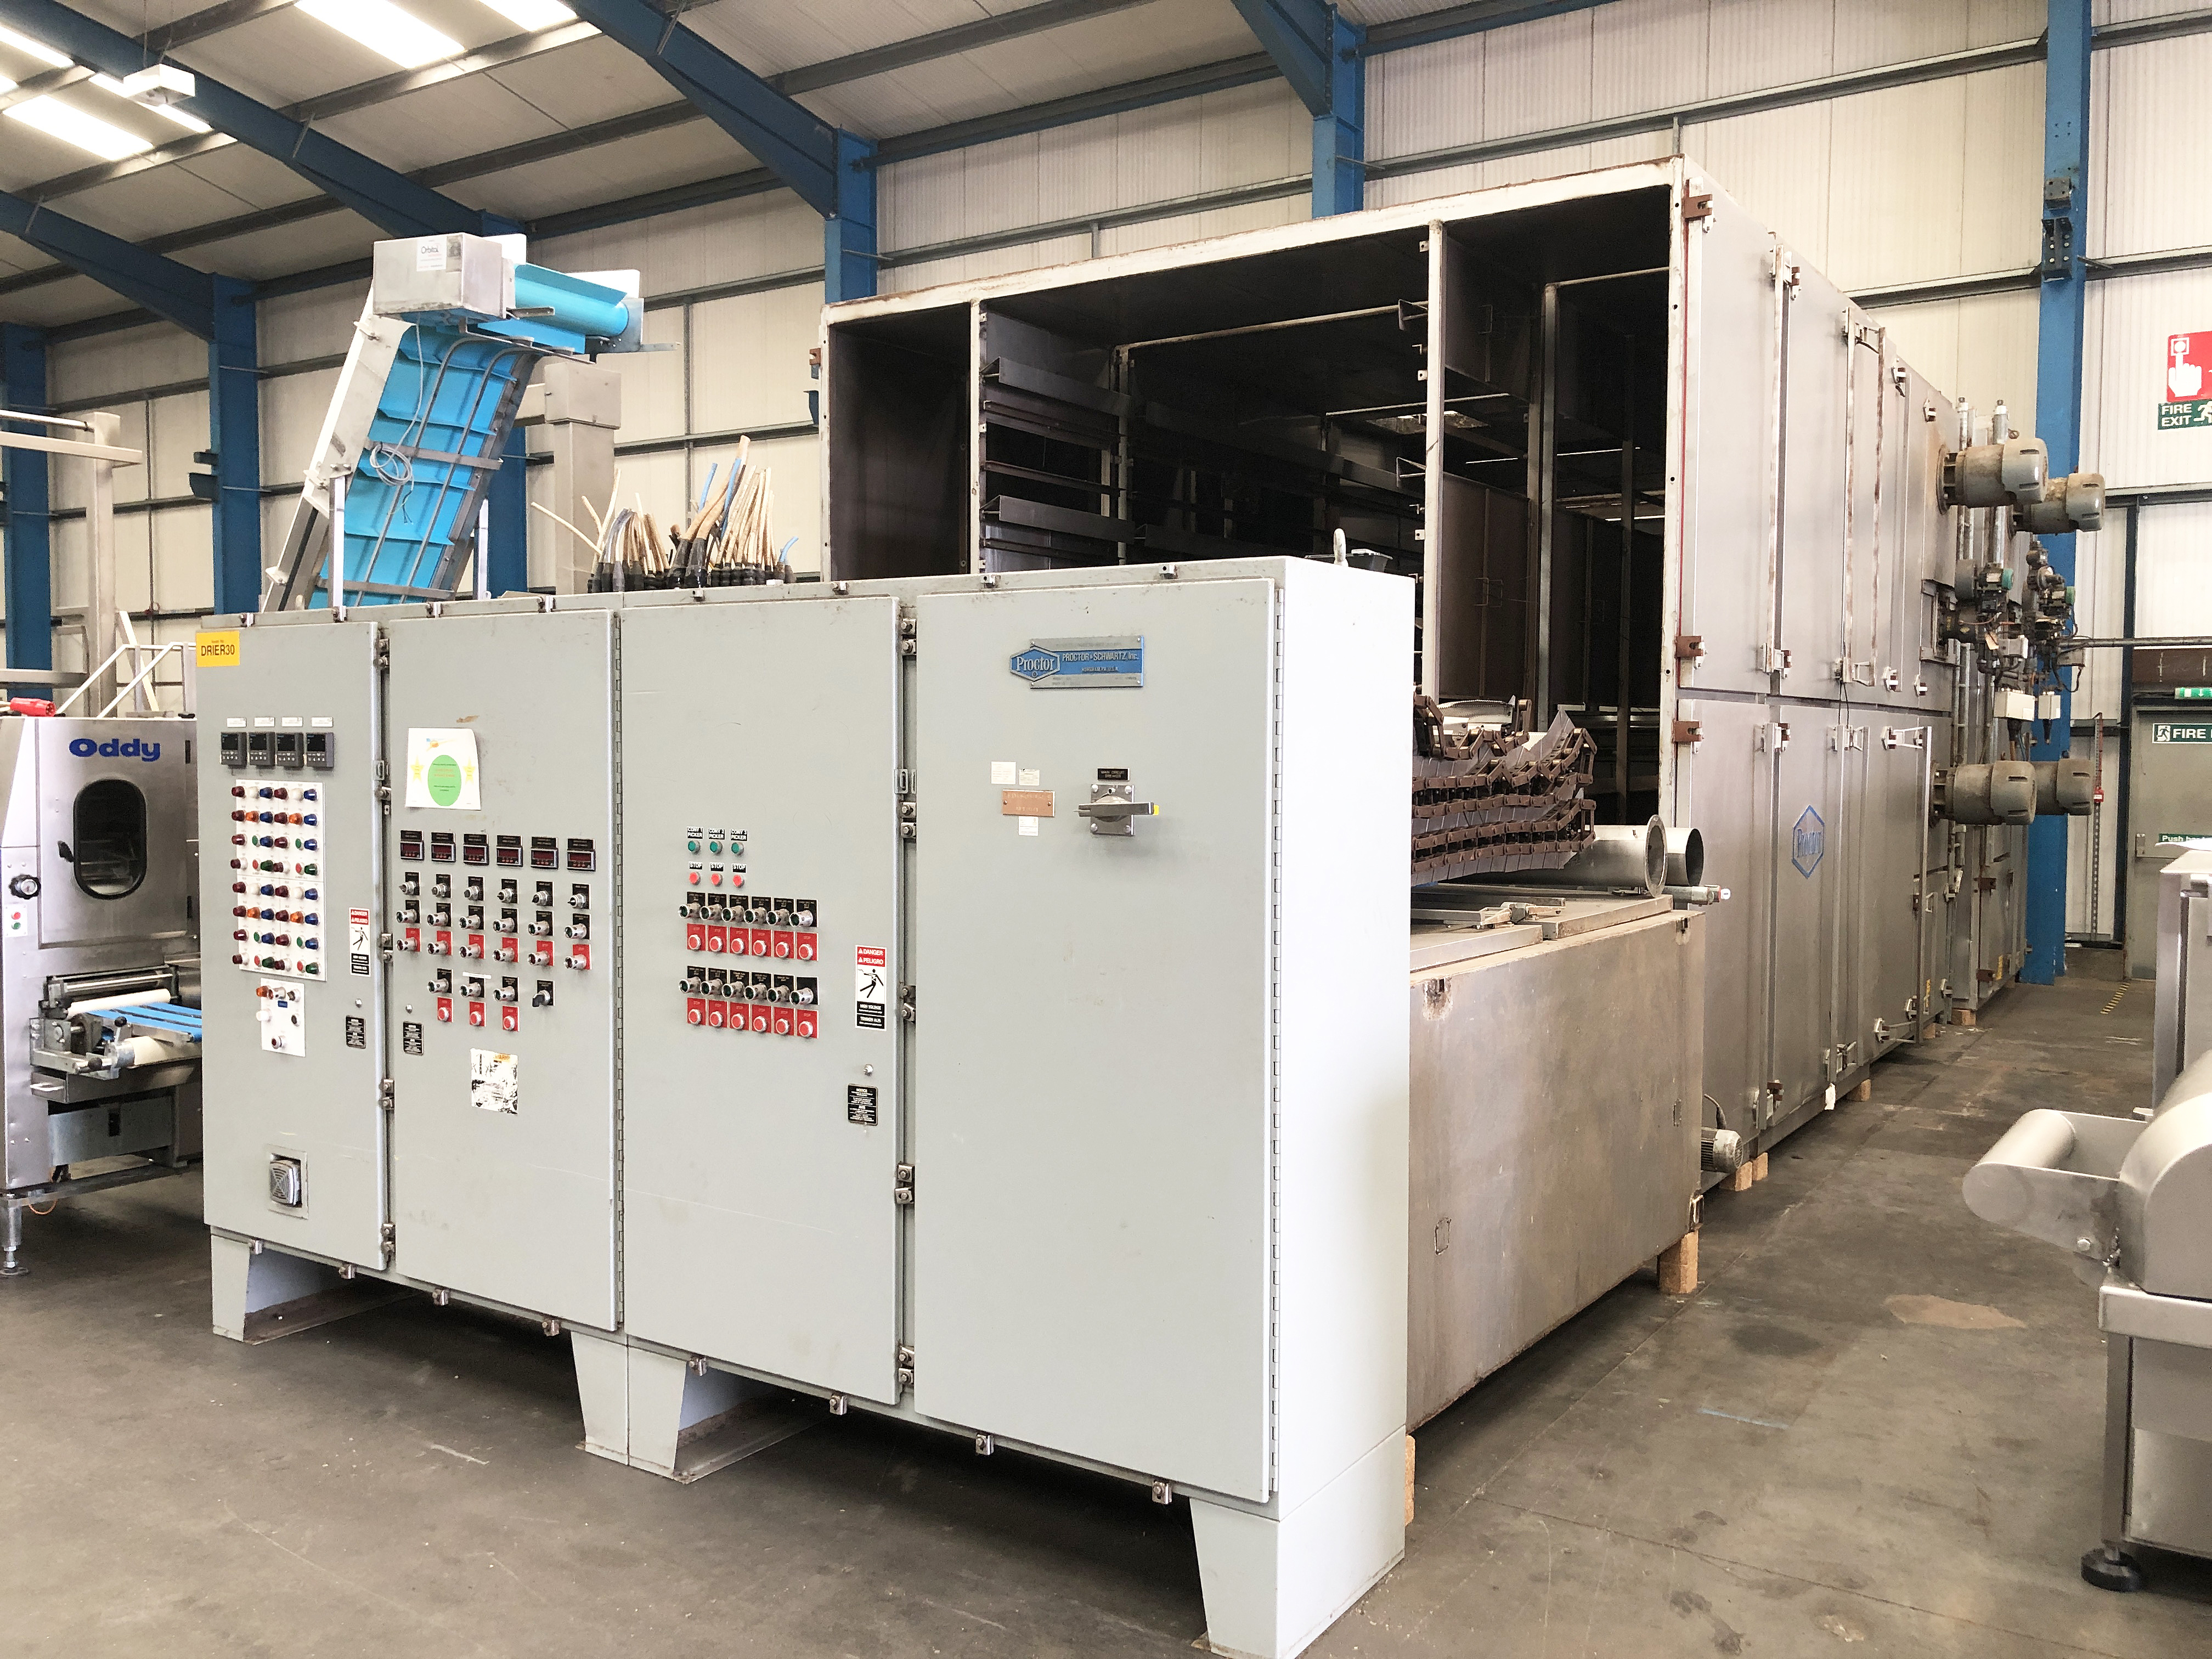 Proctor FIVE PASS GAS FIRED DRYER (dismantled by Blackrow Engineering), approx. 15m long x 5m wide x